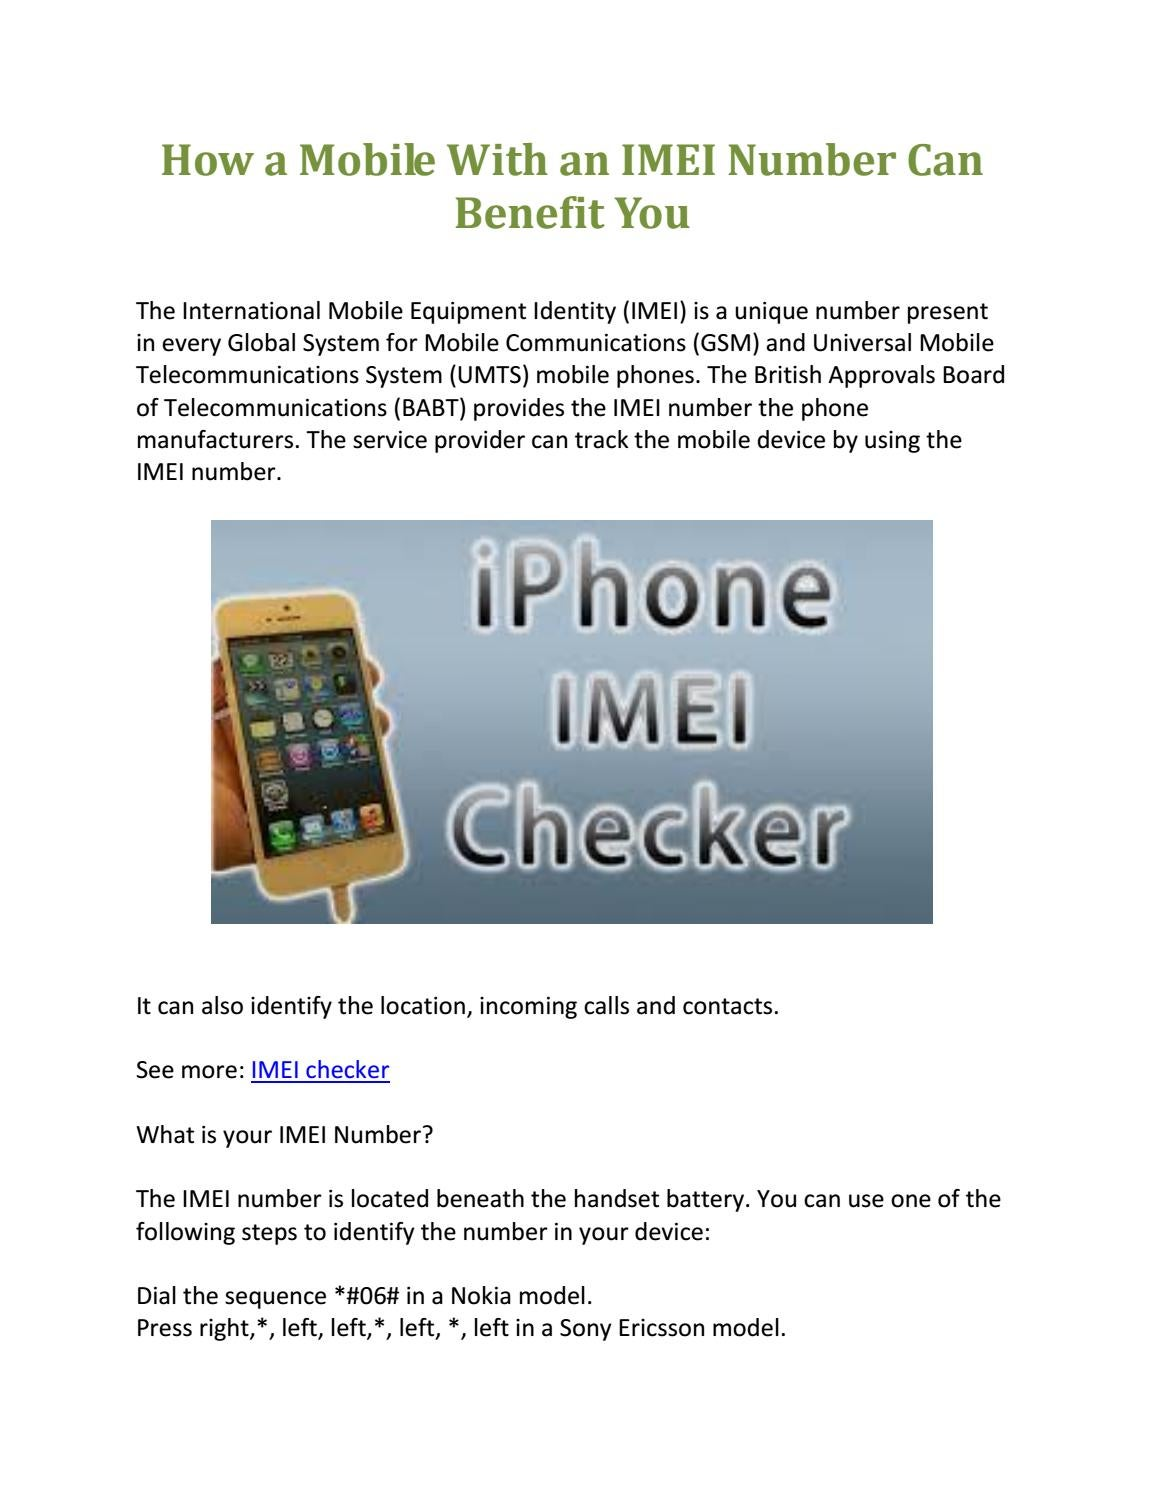 How a mobile with an imei number can benefit you by Shainy